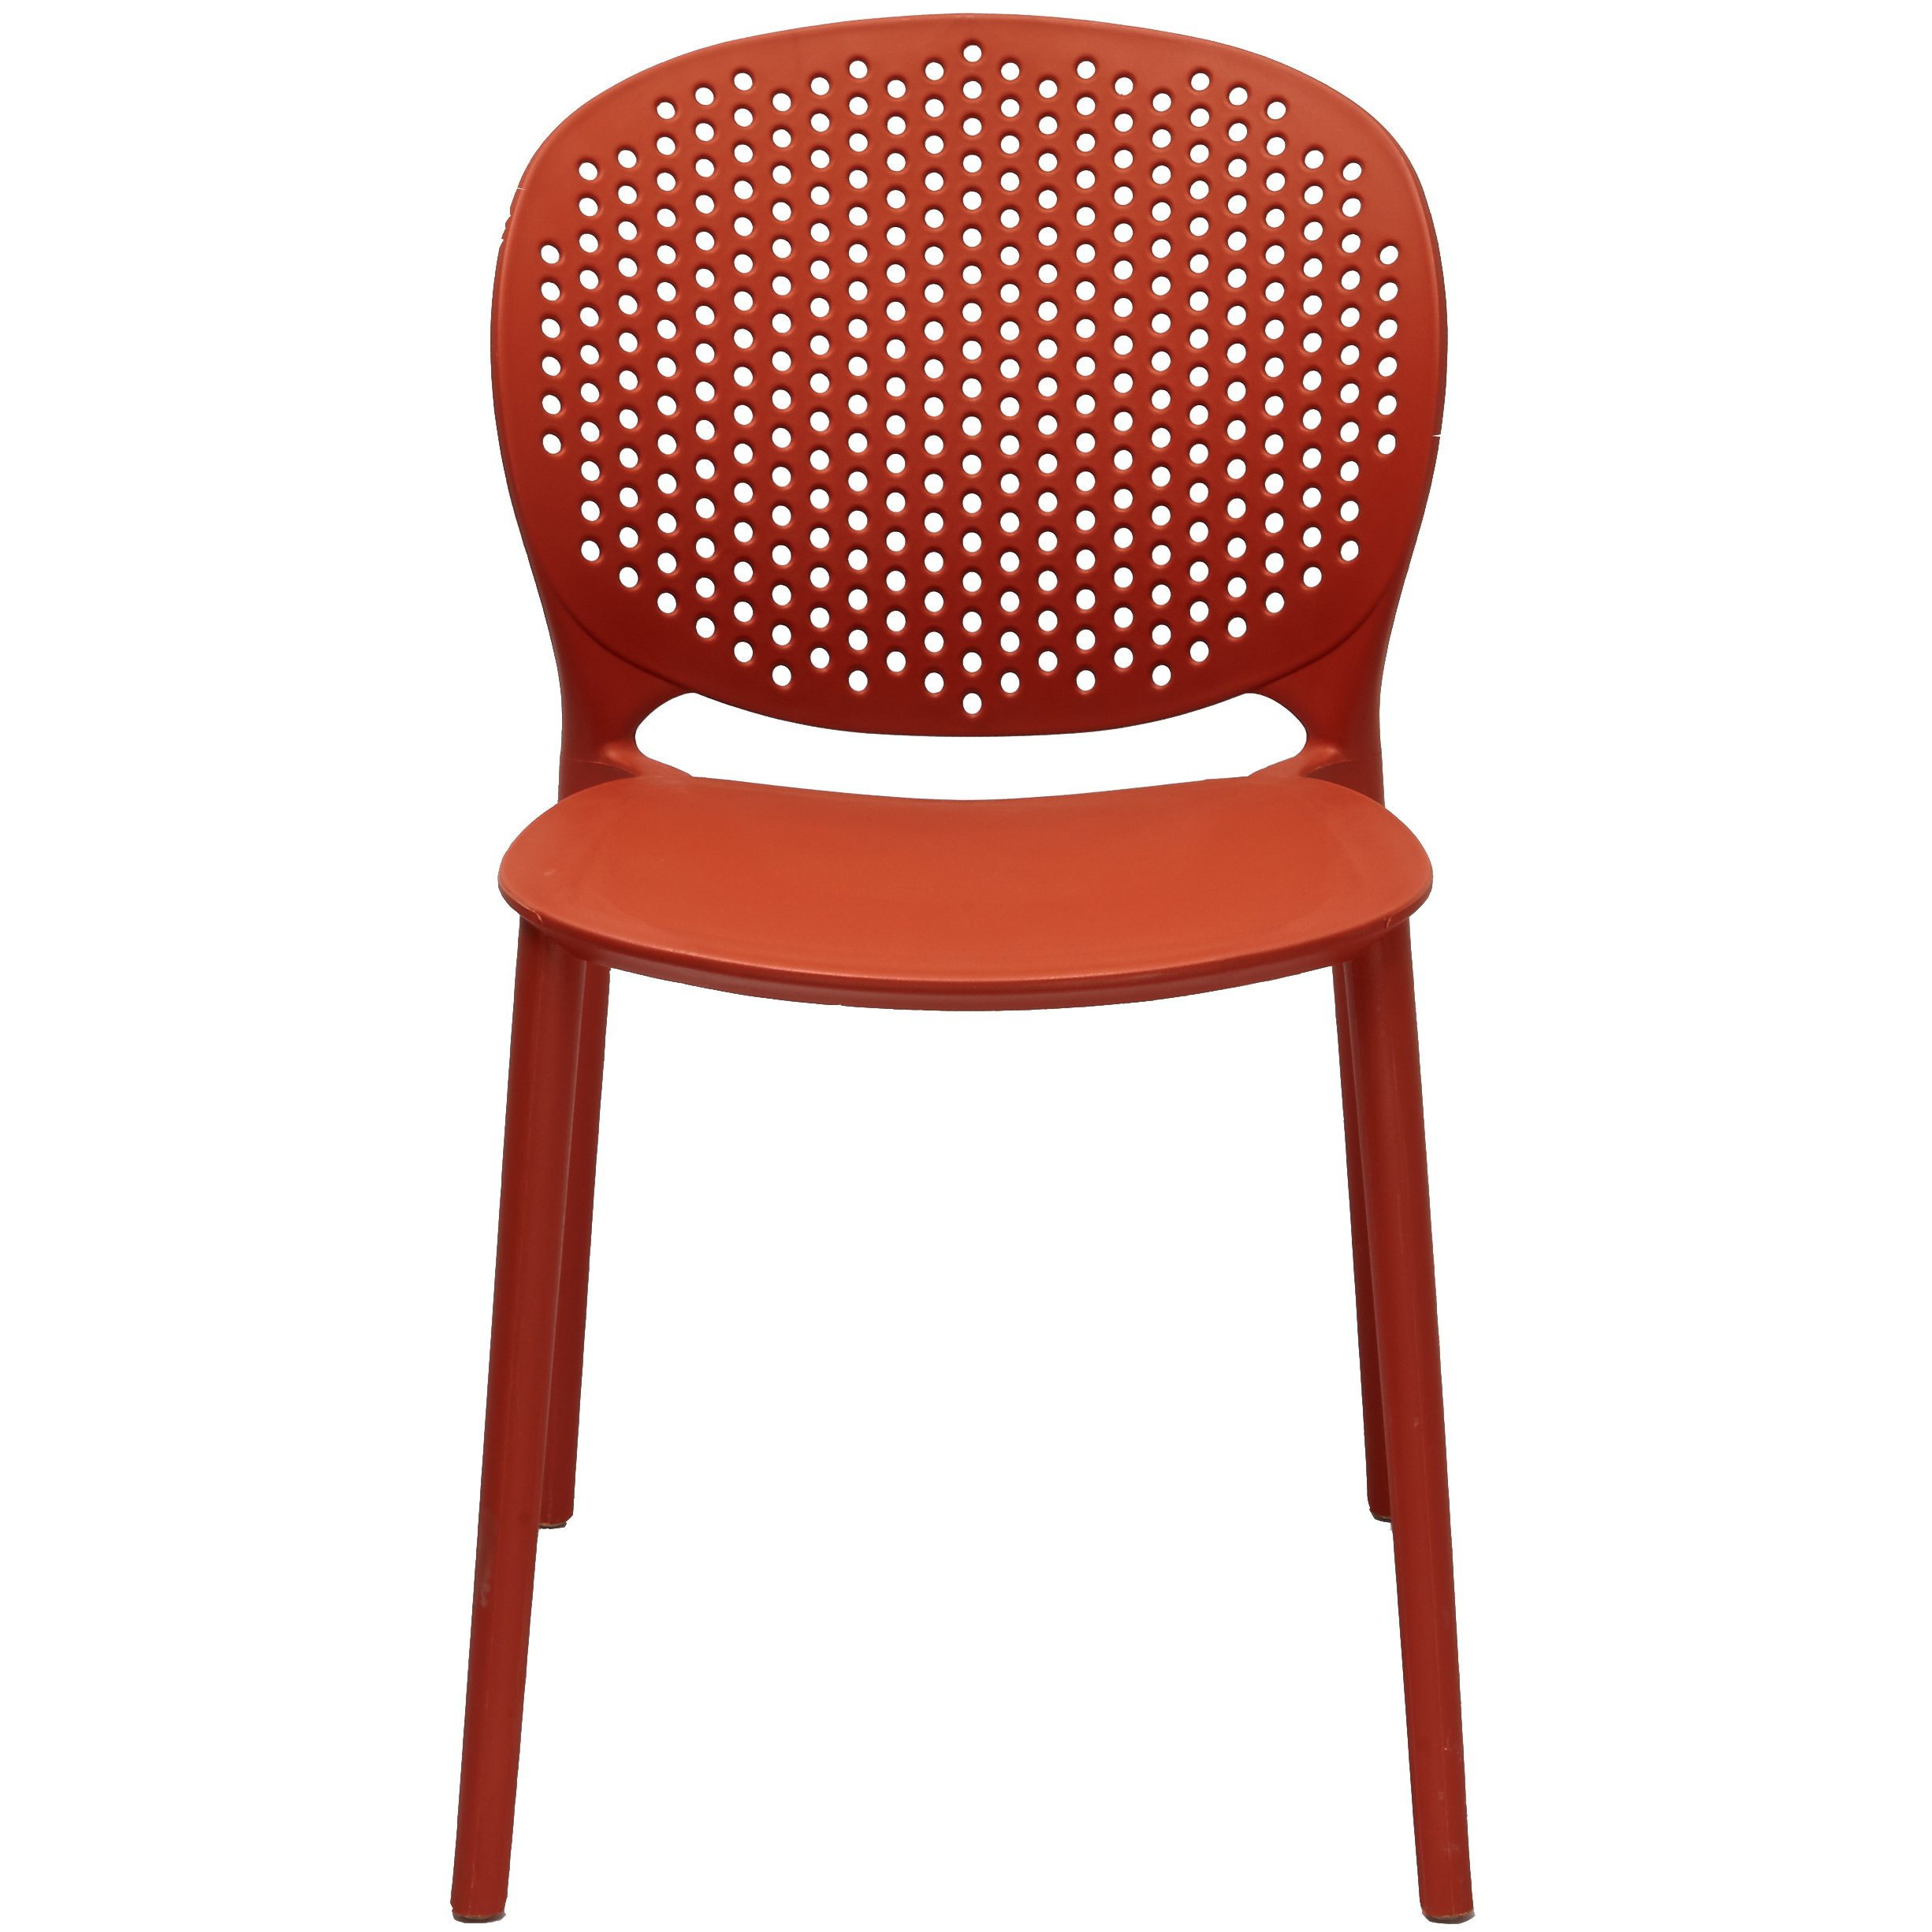 2xhome Orange Contemporary Modern Stackable Assembled Plastic Chair Molded with Back Armless Side Matte for Dining Room Living Designer Outdoor Light Weight Garden Patio Balcony Work Office